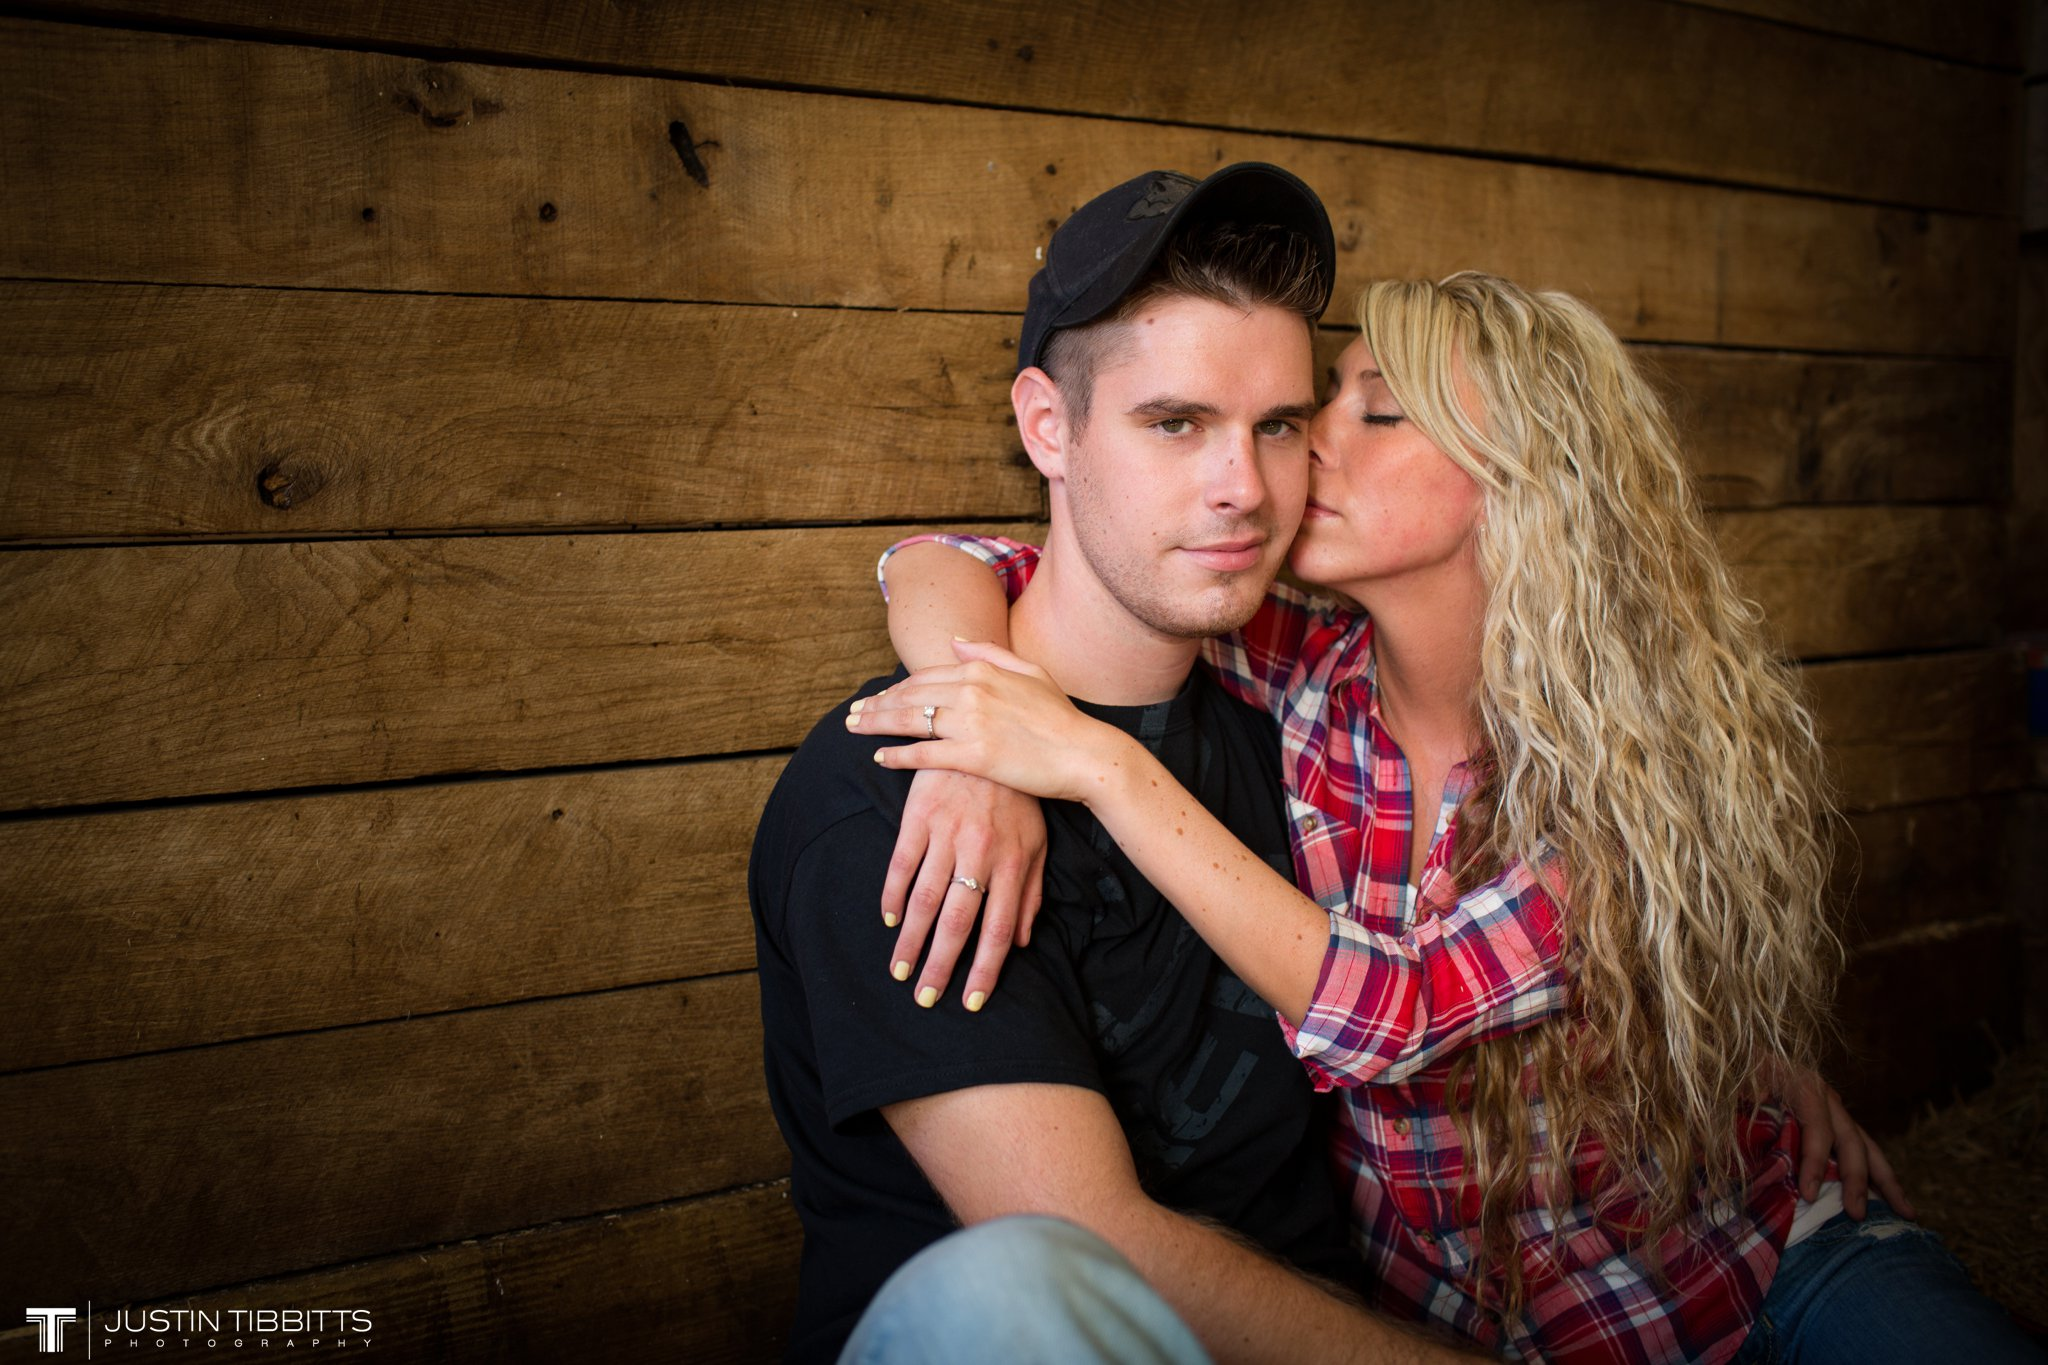 Justin Tibbitts Photography Tim and Taylor's Chatham New York Engagement Photo Shoot Albany Wedding Photography_0004